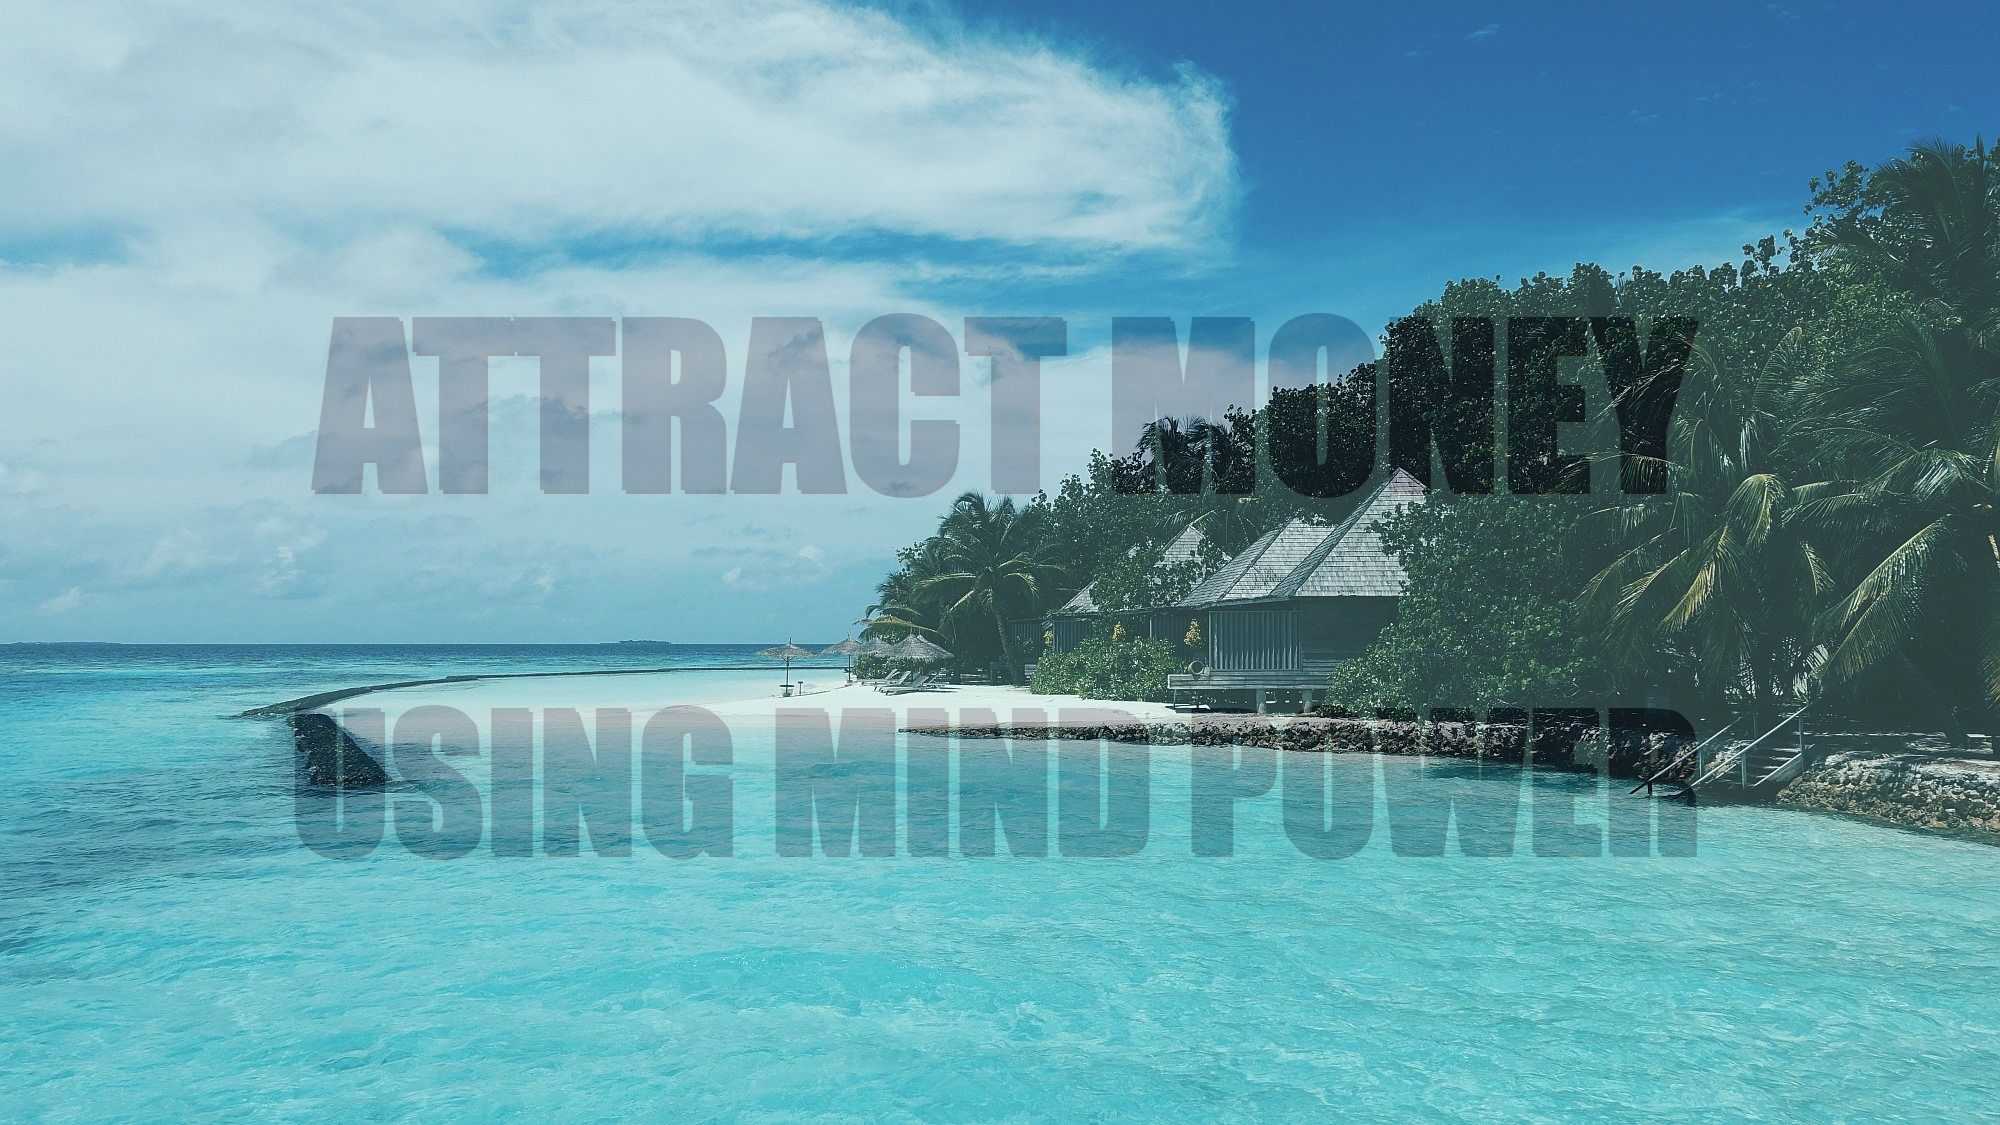 How-to-attract-money-using-mind-power-manifest-cash-9-2000